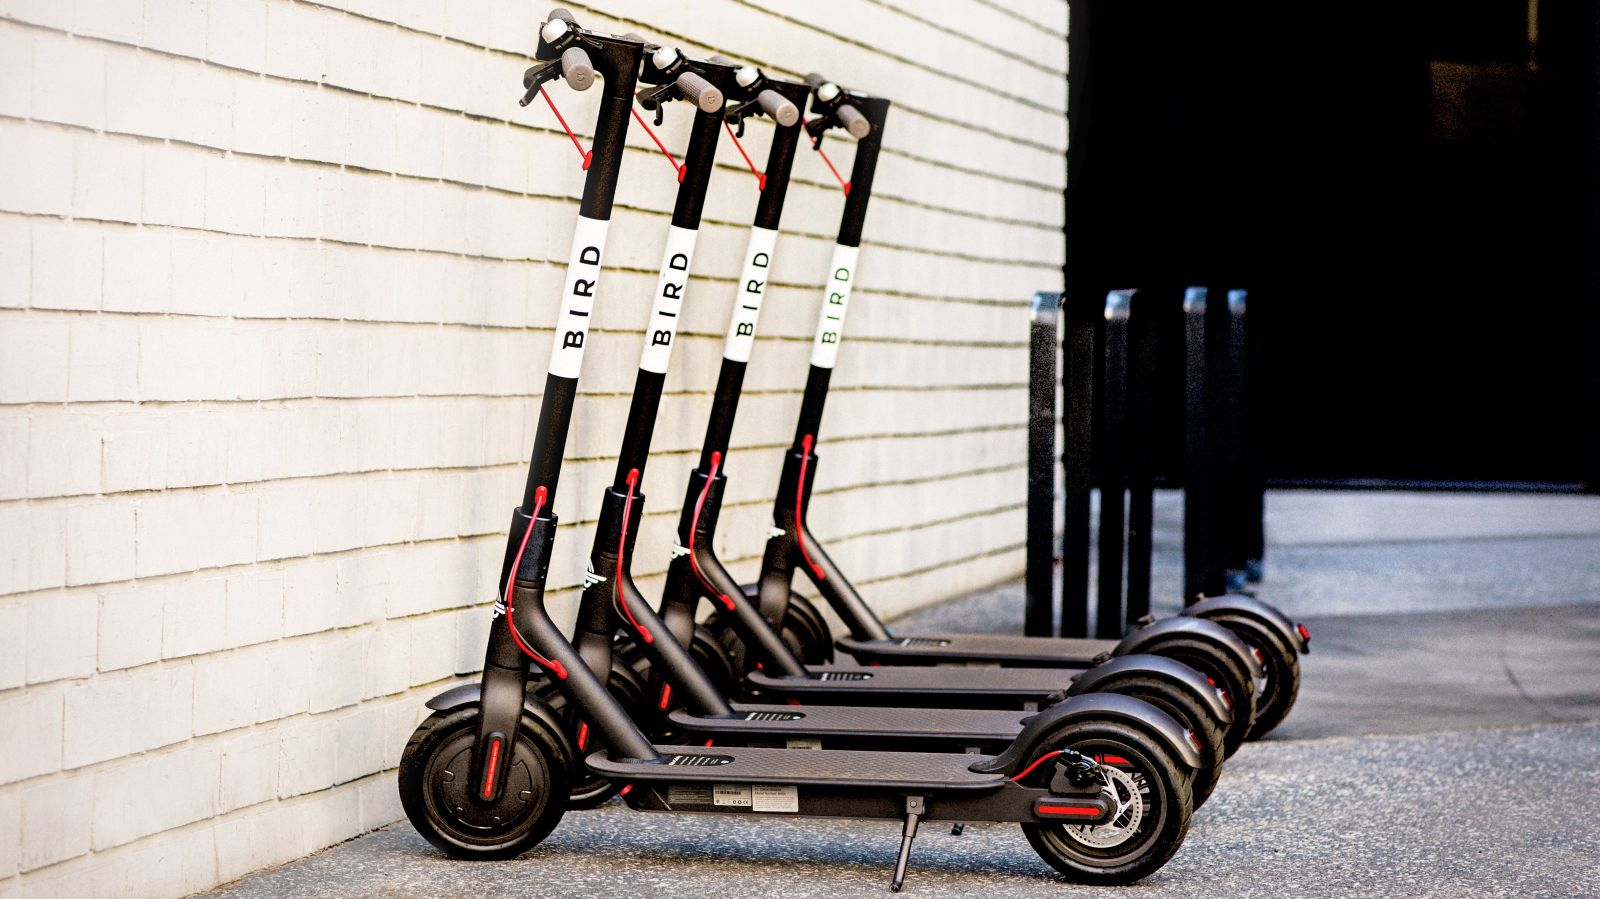 xiaomi 39 s electric scooters are a hit with us startups like. Black Bedroom Furniture Sets. Home Design Ideas